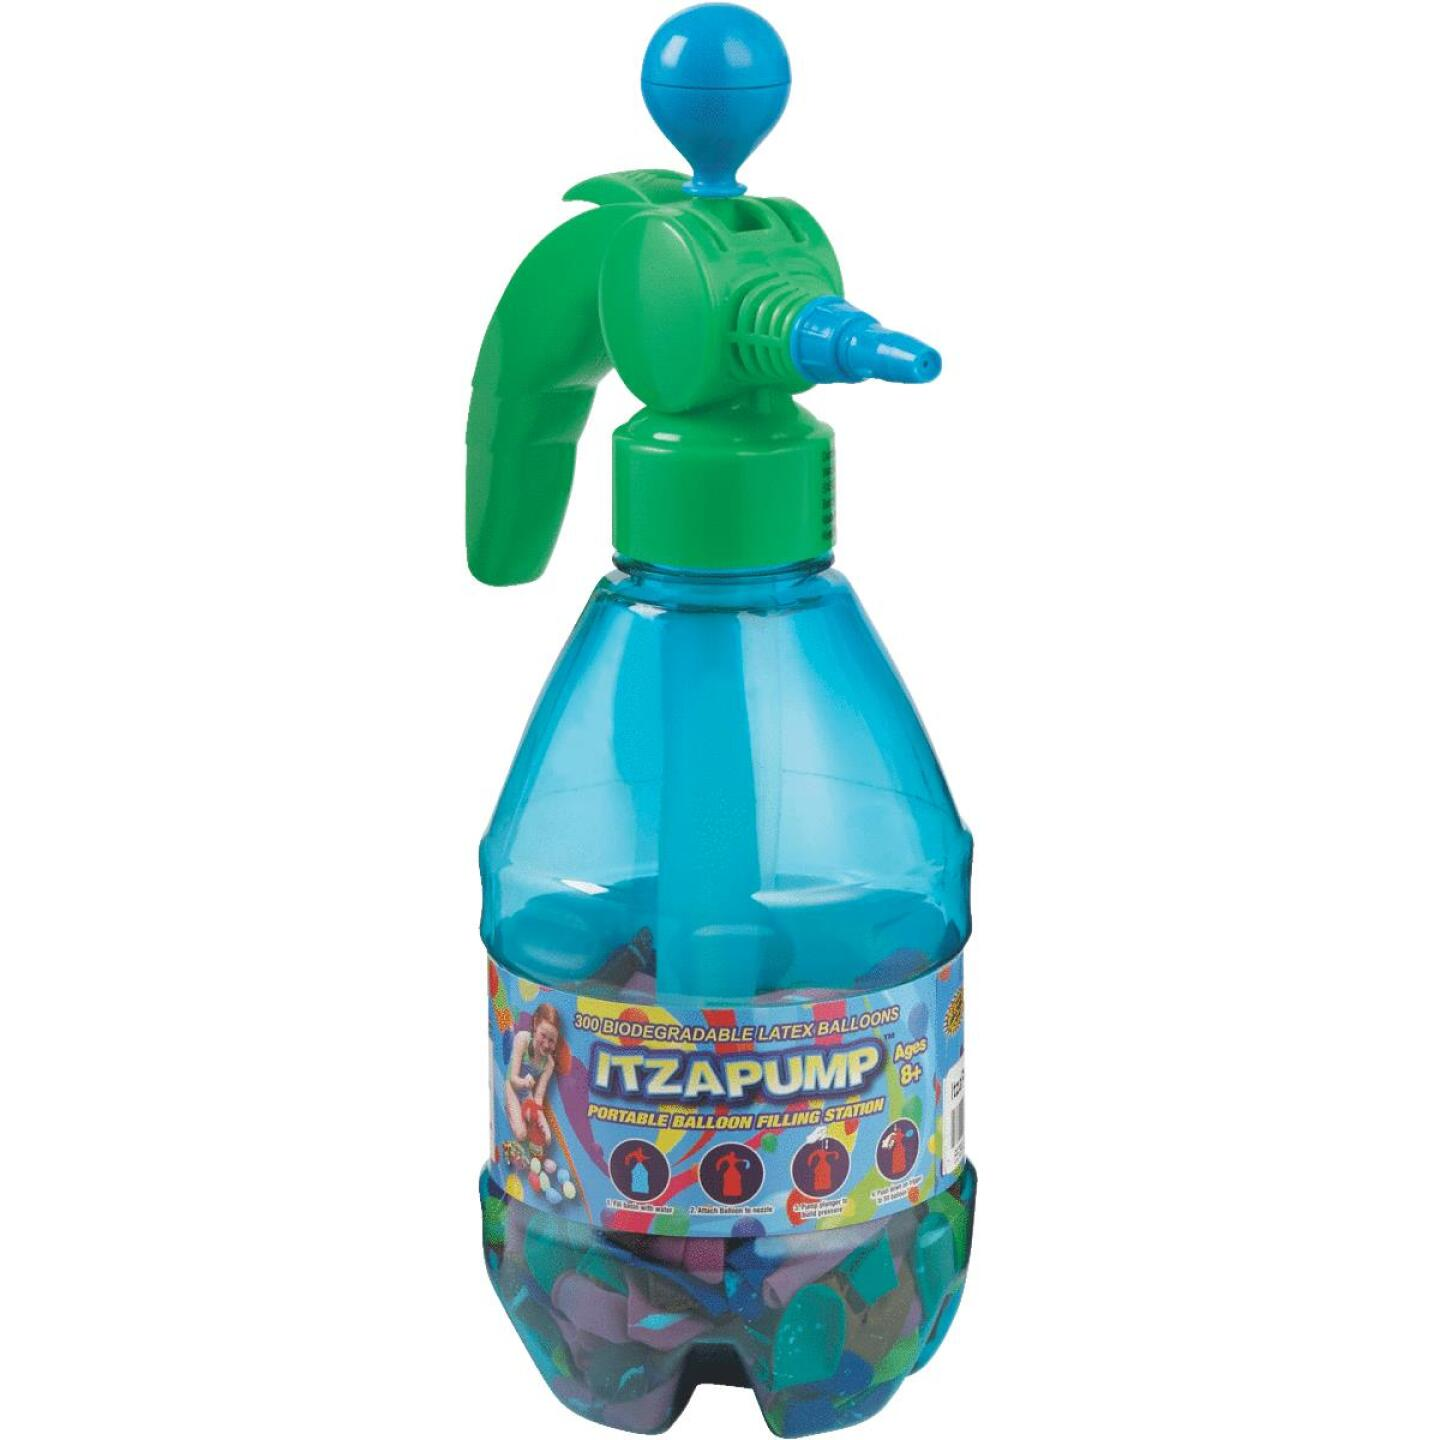 Water Sports ItzaPump Water Balloon Pump with 300 Balloons Image 1